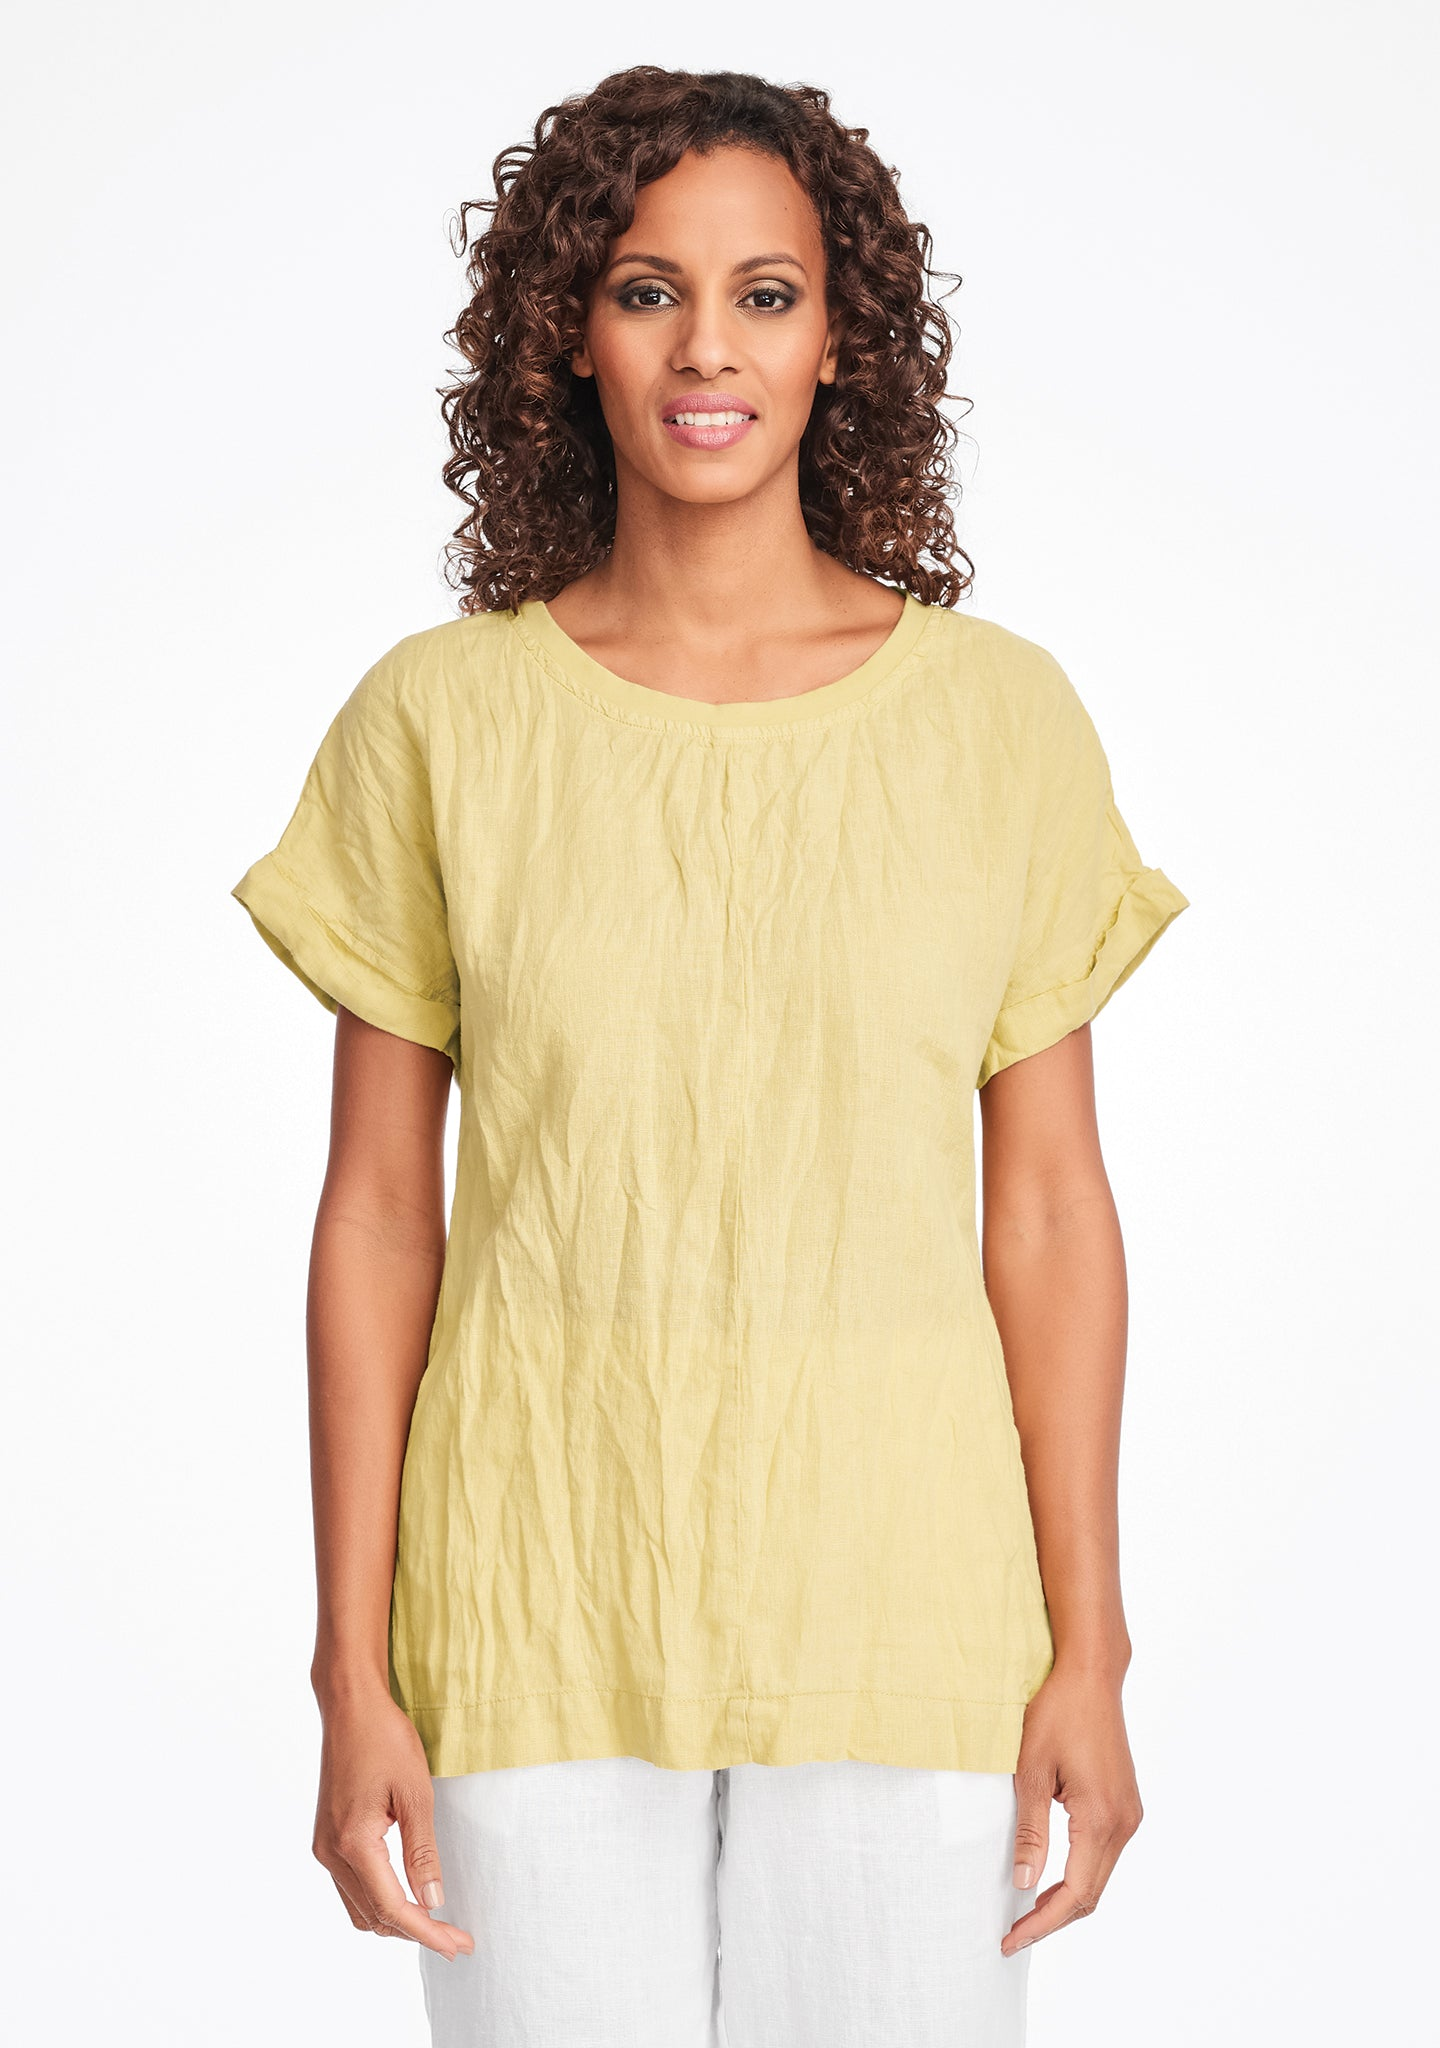 tee top linen t shirt yellow